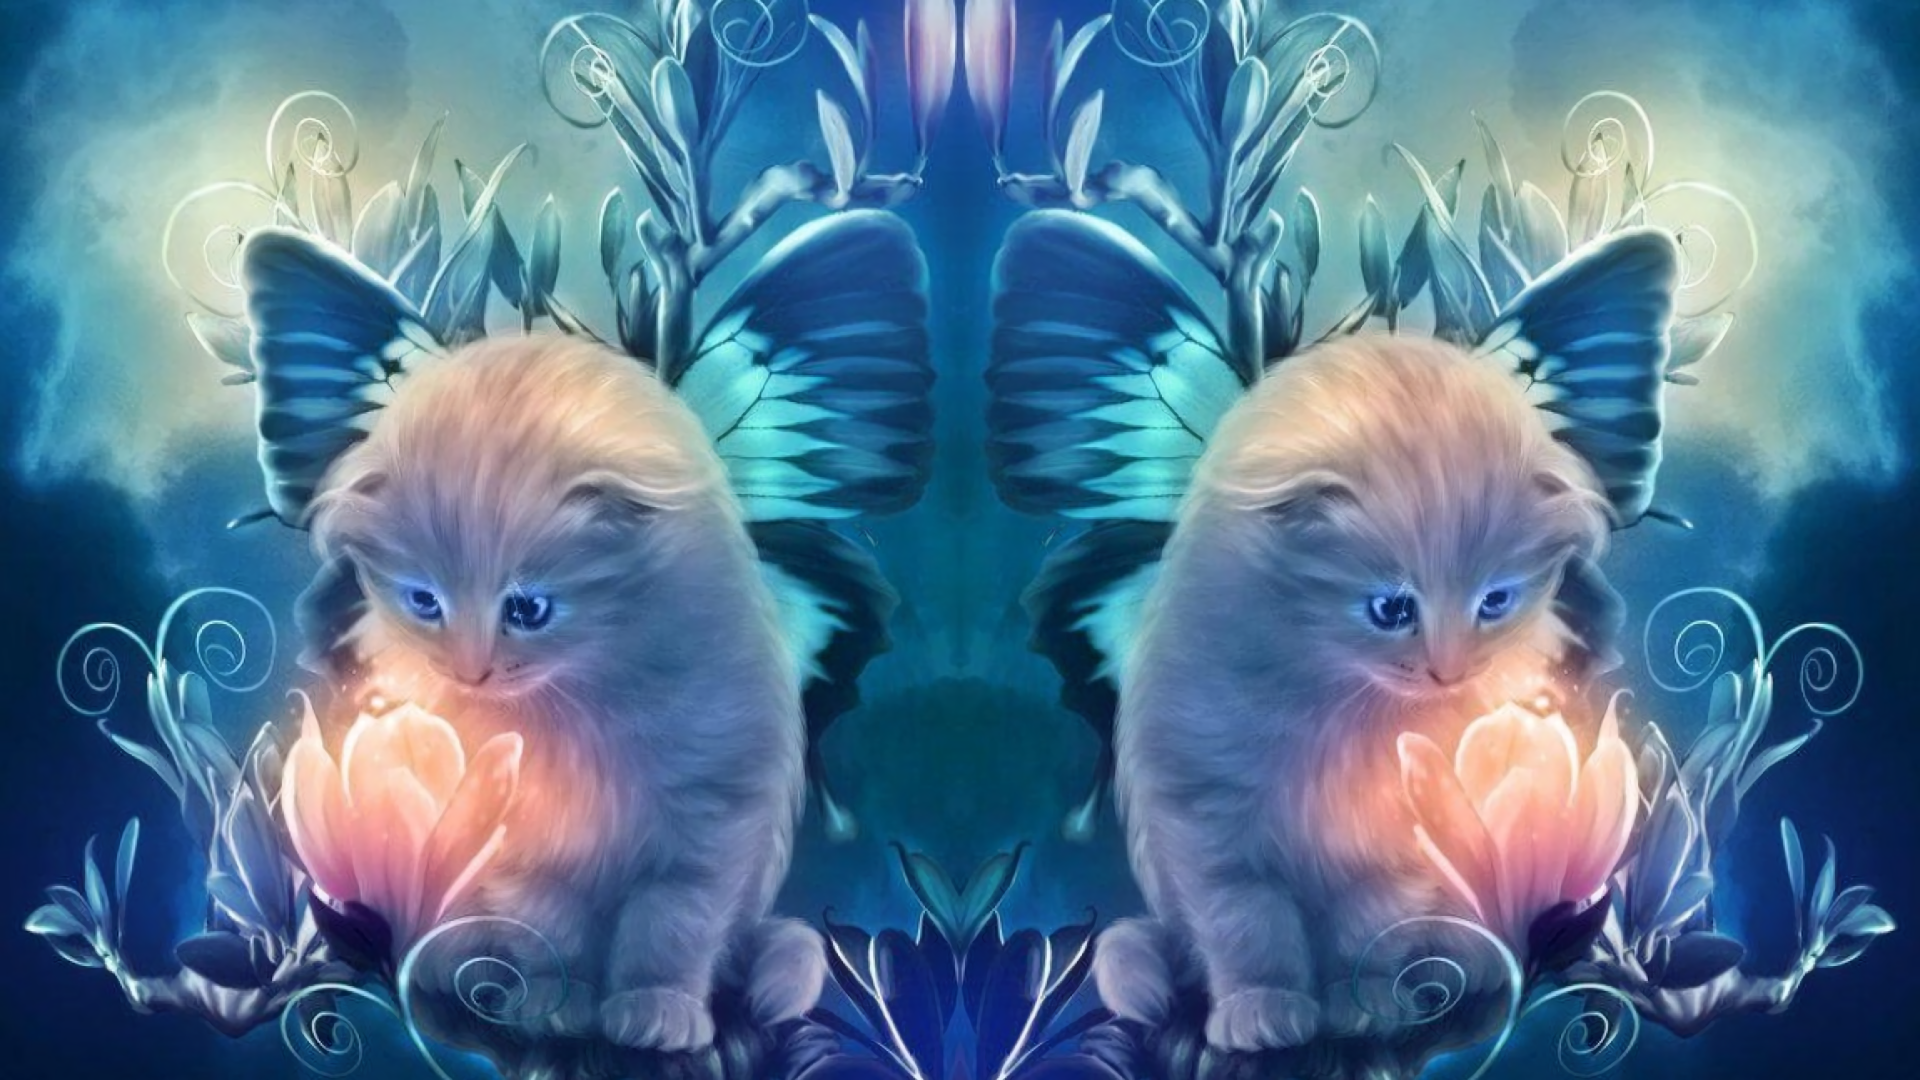 Angel Cats Hd Wallpaper Background Image 1920x1080 Id 702640 Wallpaper Abyss